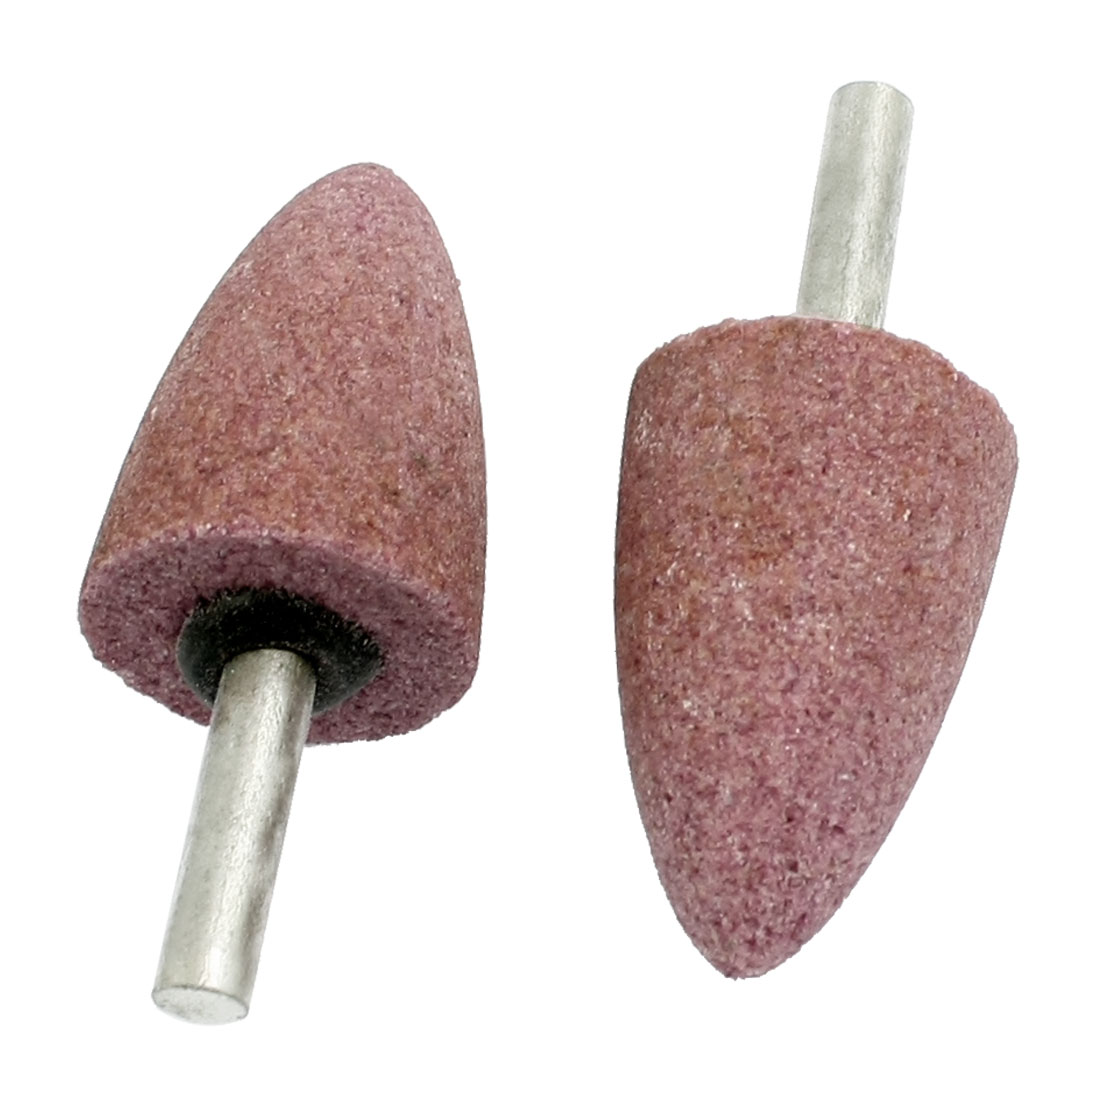 2 Pcs 25mm x 39mm Cone Shape 6mm Shank Abrasive Mounted Point Pink